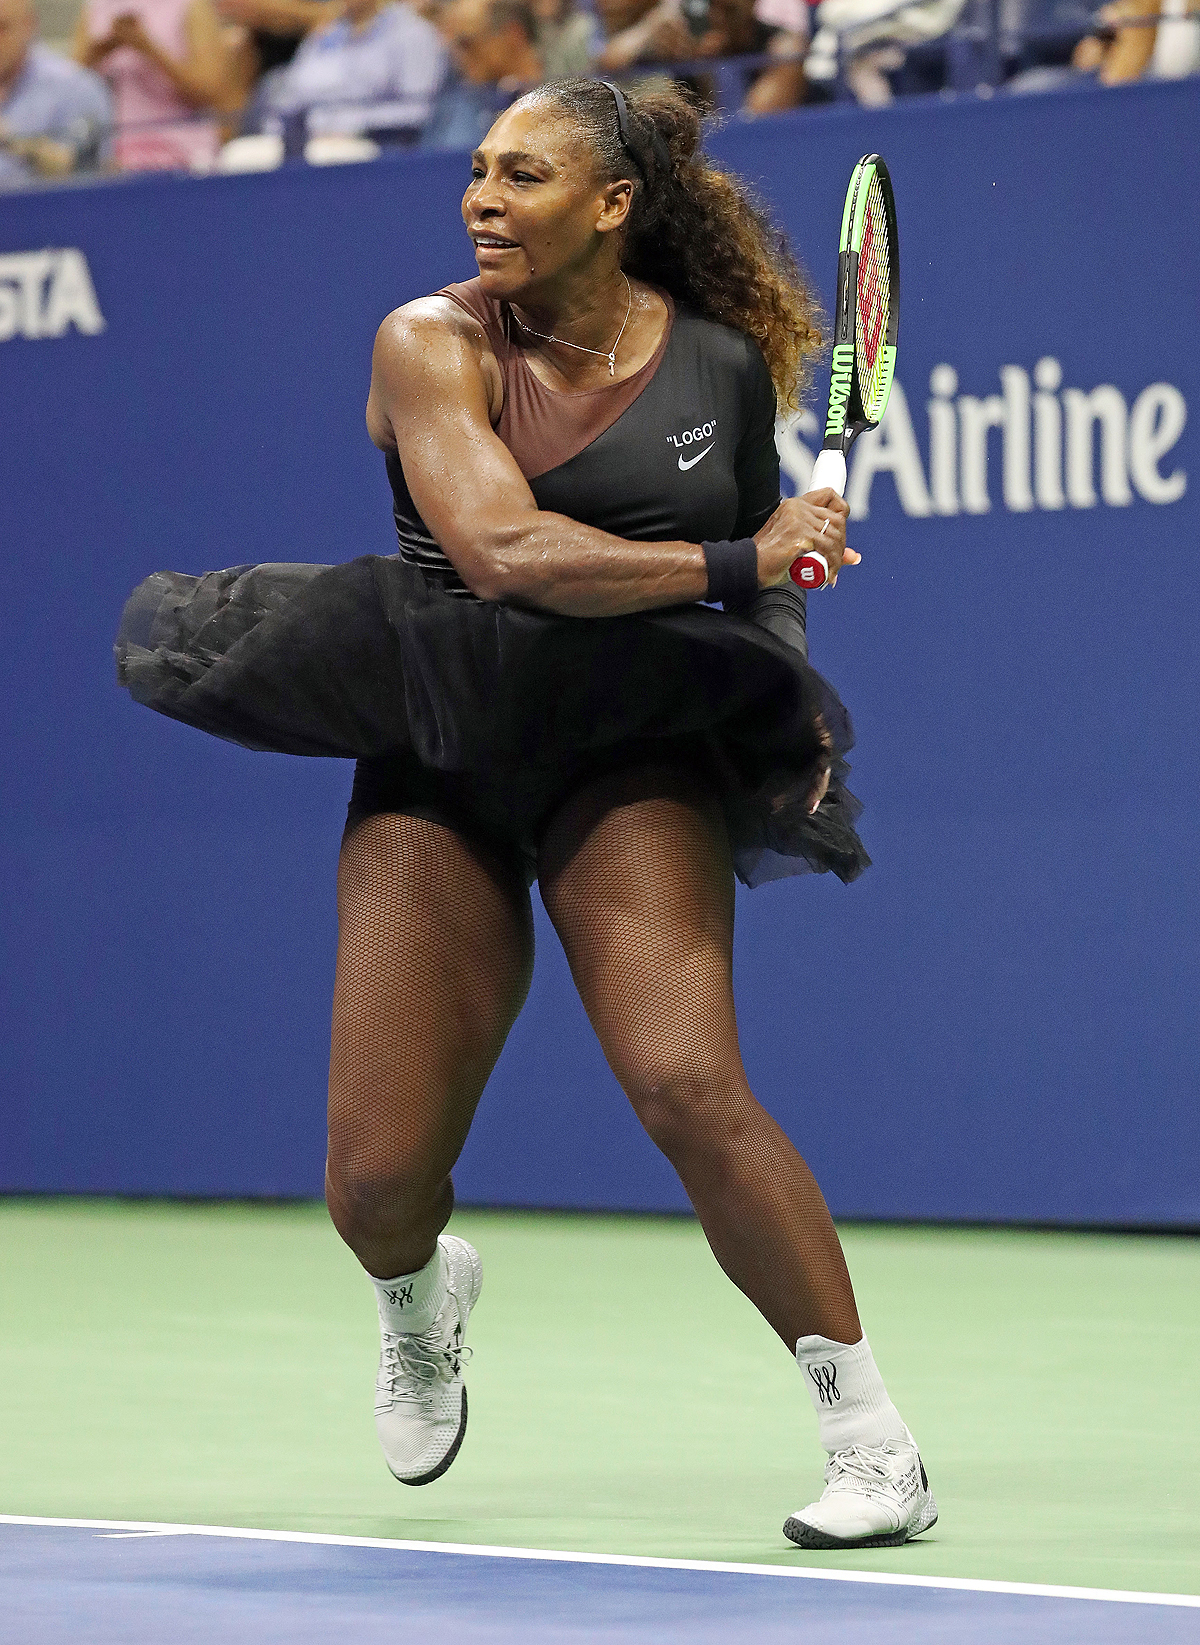 Serena Williams Competes At The 2018 US Open In New York